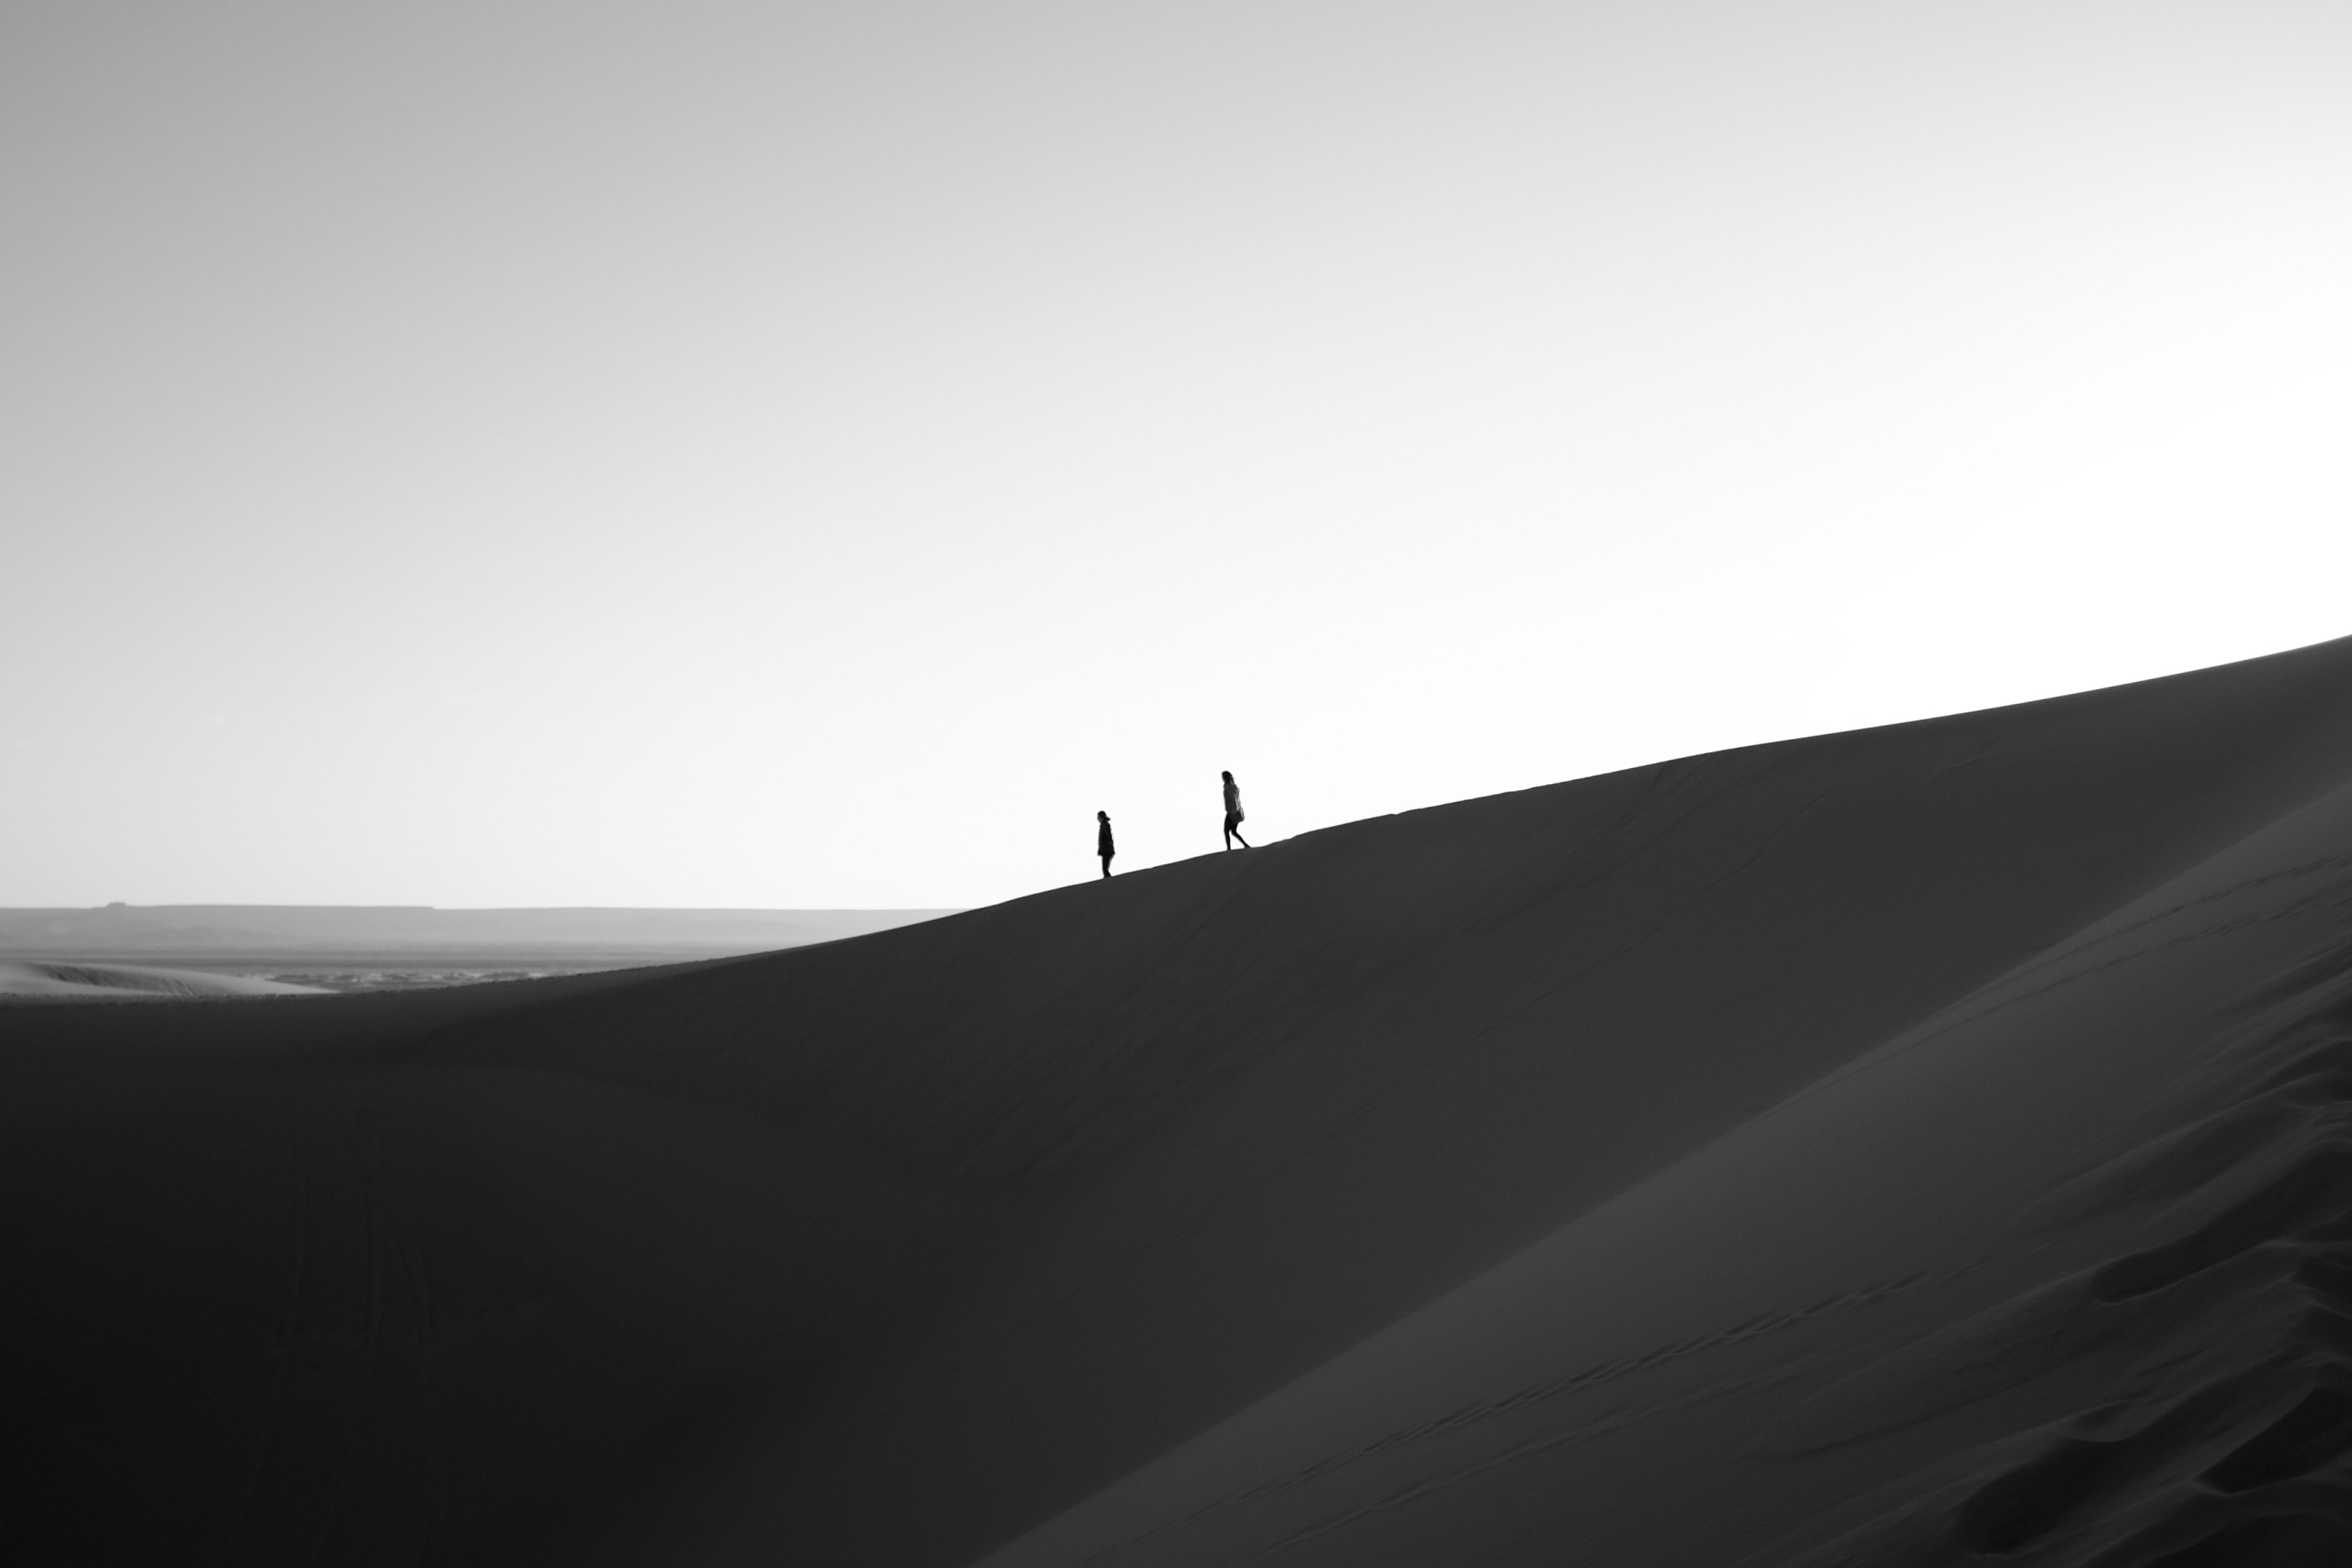 Black and white image of two people walking across sand dunes in the distance